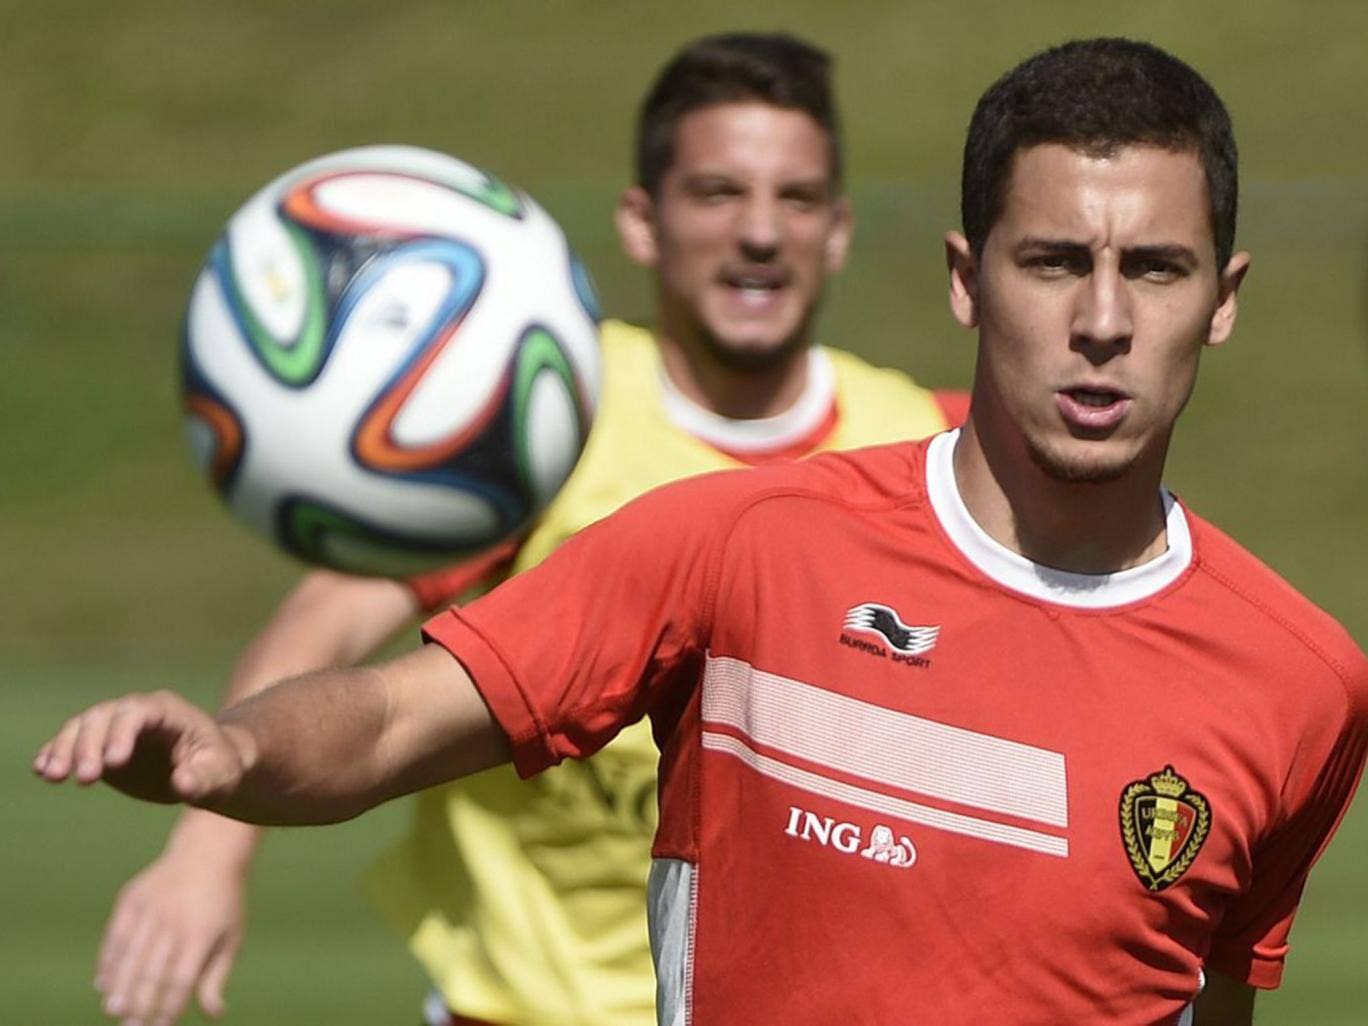 Chelsea midfielder Eden Hazard has left it late to turn on the style in both of Belgium's matches so far at this World Cup